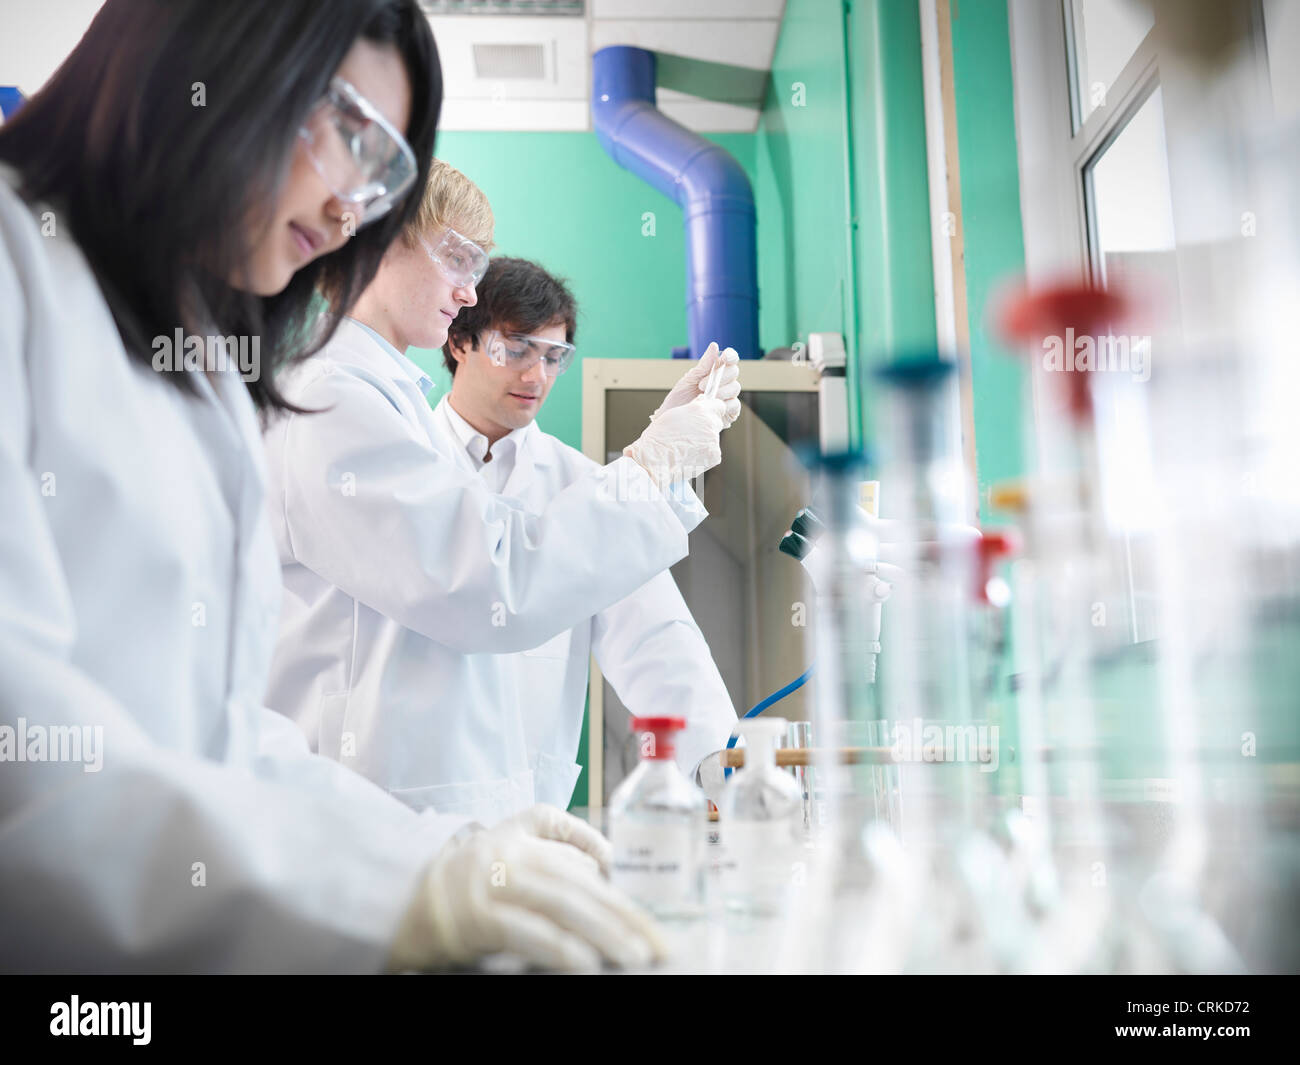 Chemistry students working in lab - Stock Image